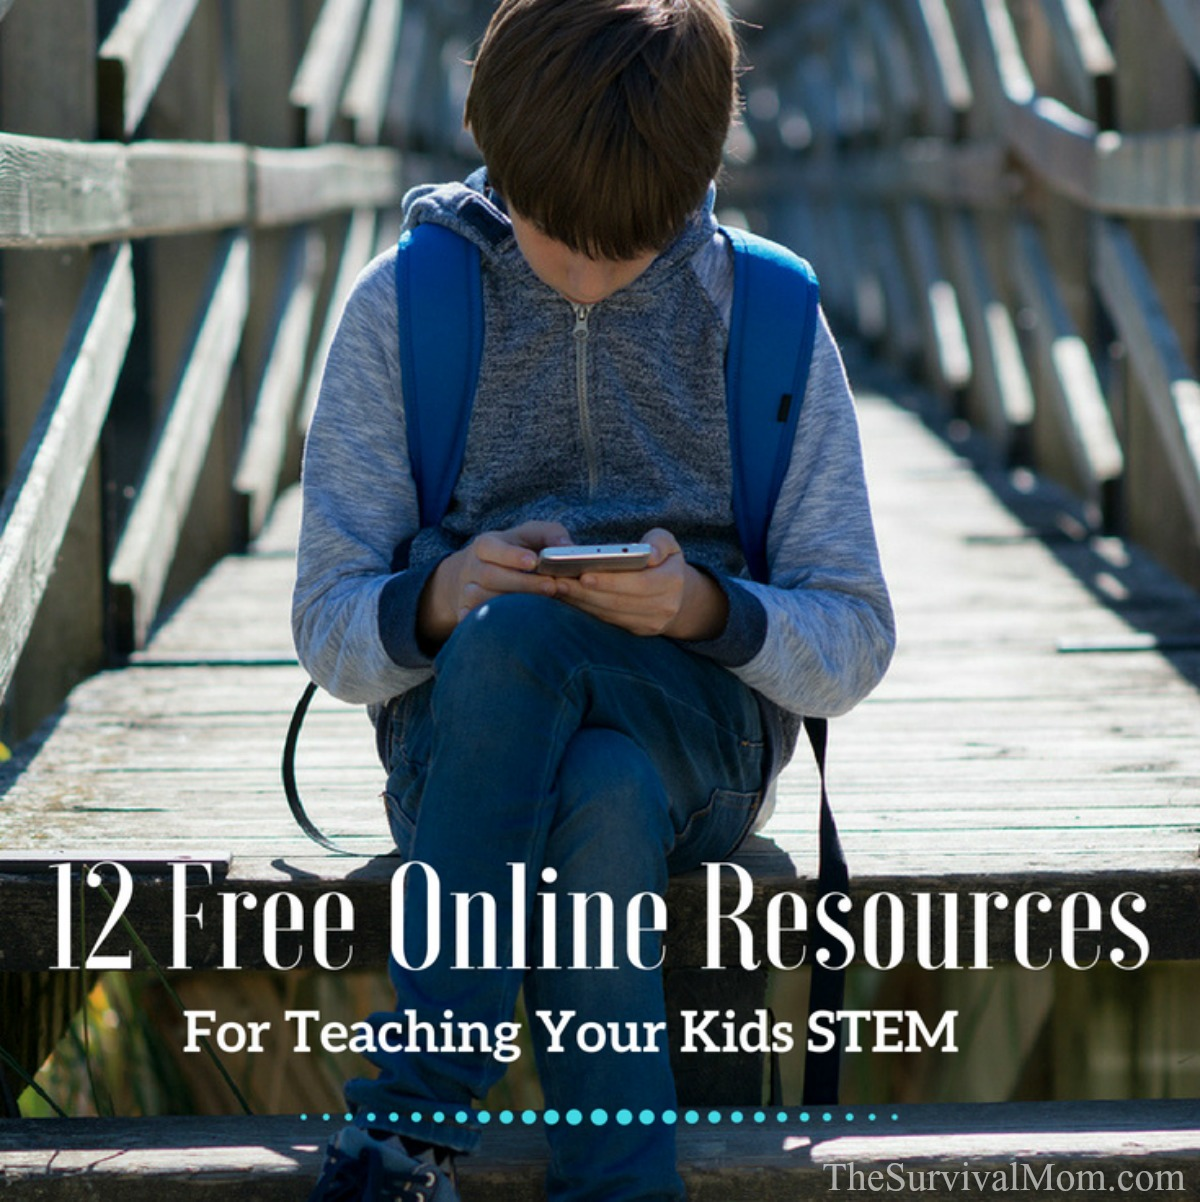 12 Free Online Resources For Teaching Your Kids STEM via The Survival Mom